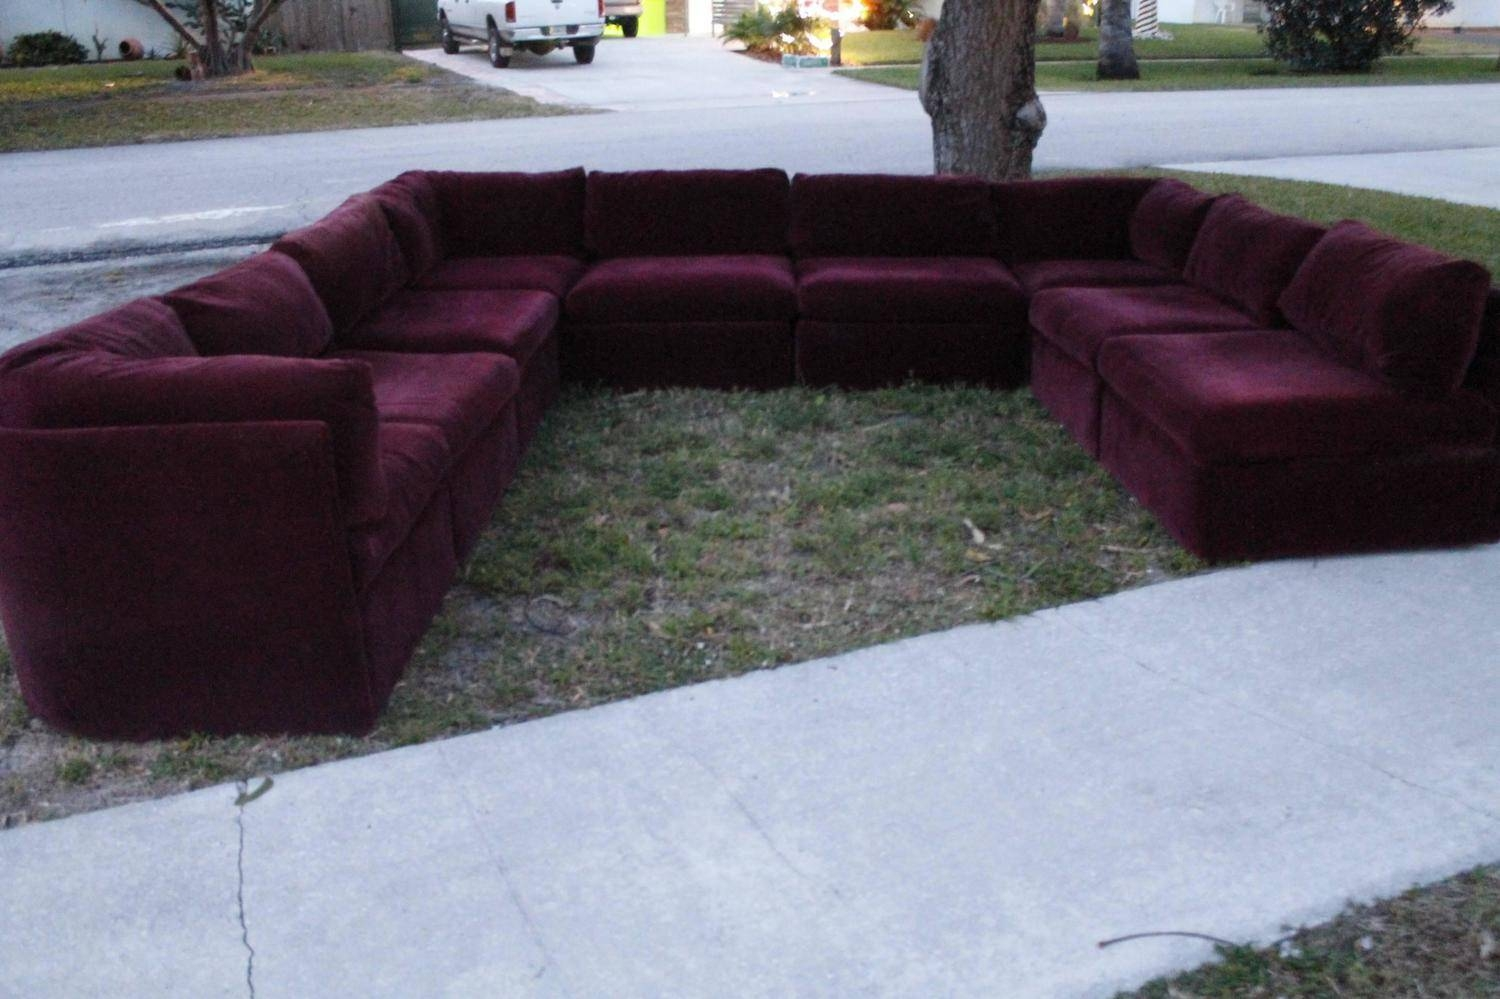 Vintage Milo Baughman Thayer Coggin 9 Piece Sectional Sofa within Burgundy Sectional Sofas (Image 15 of 15)